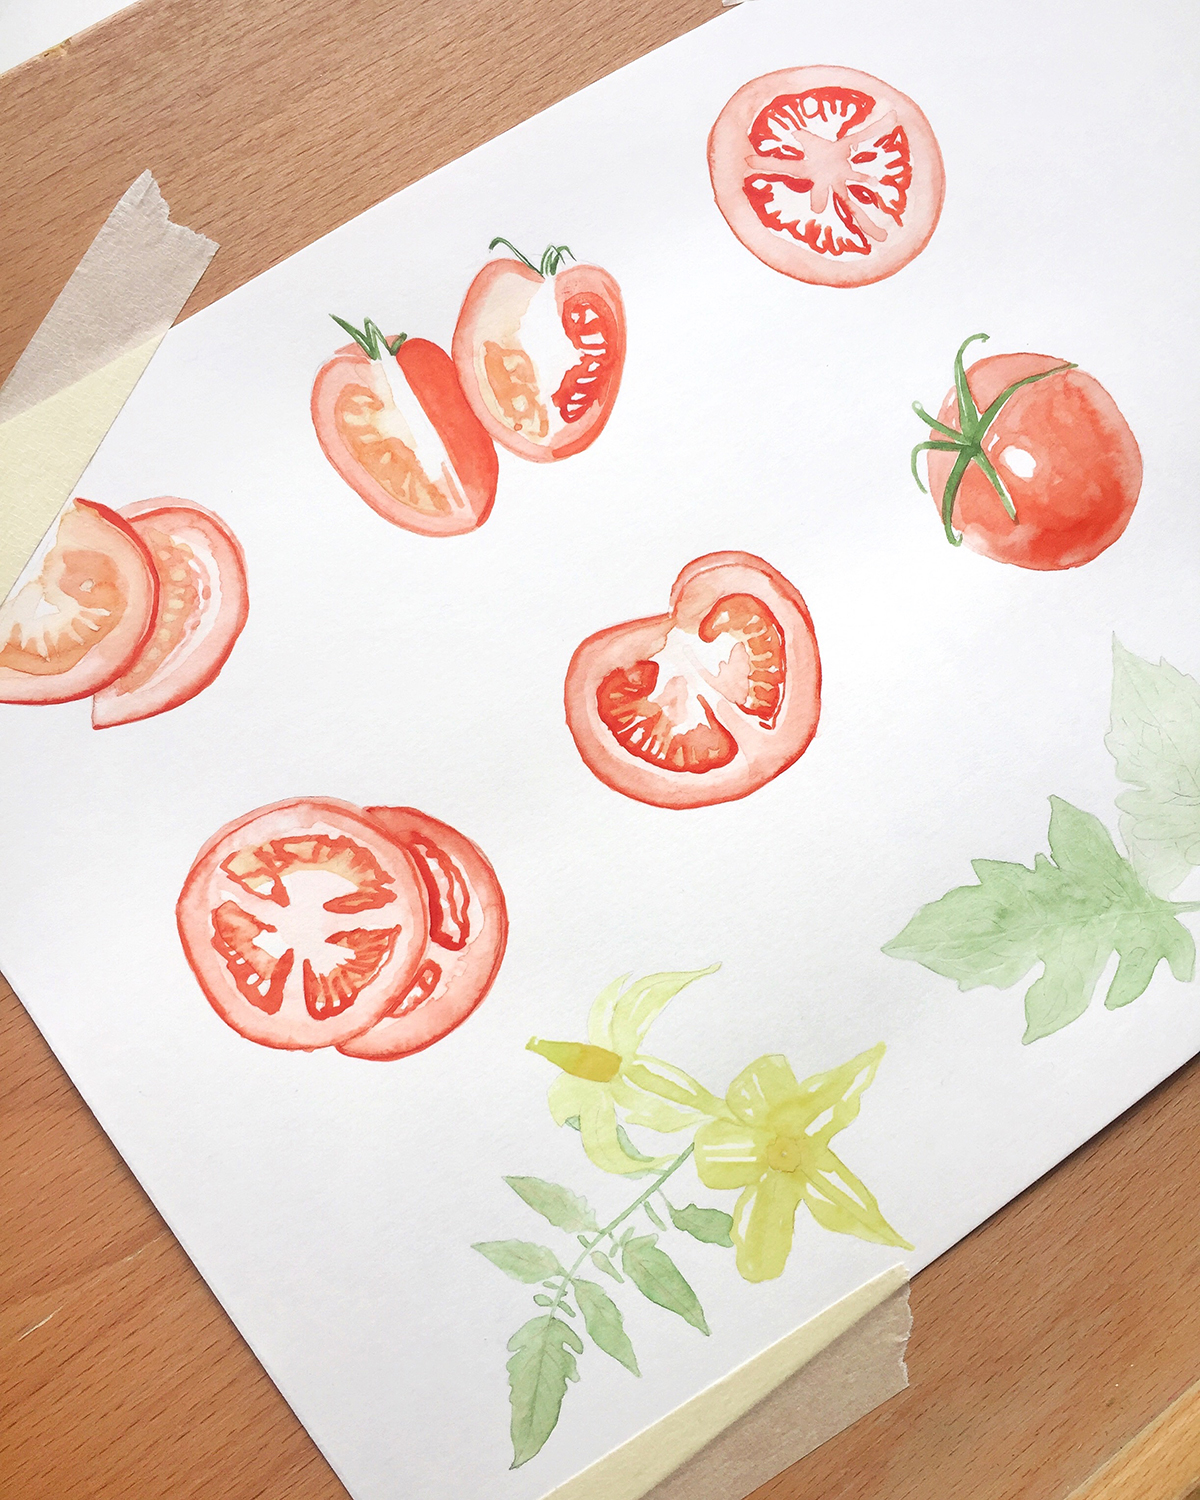 Process pictures of tomatoes illustration. 2019 © Miriam Figueras